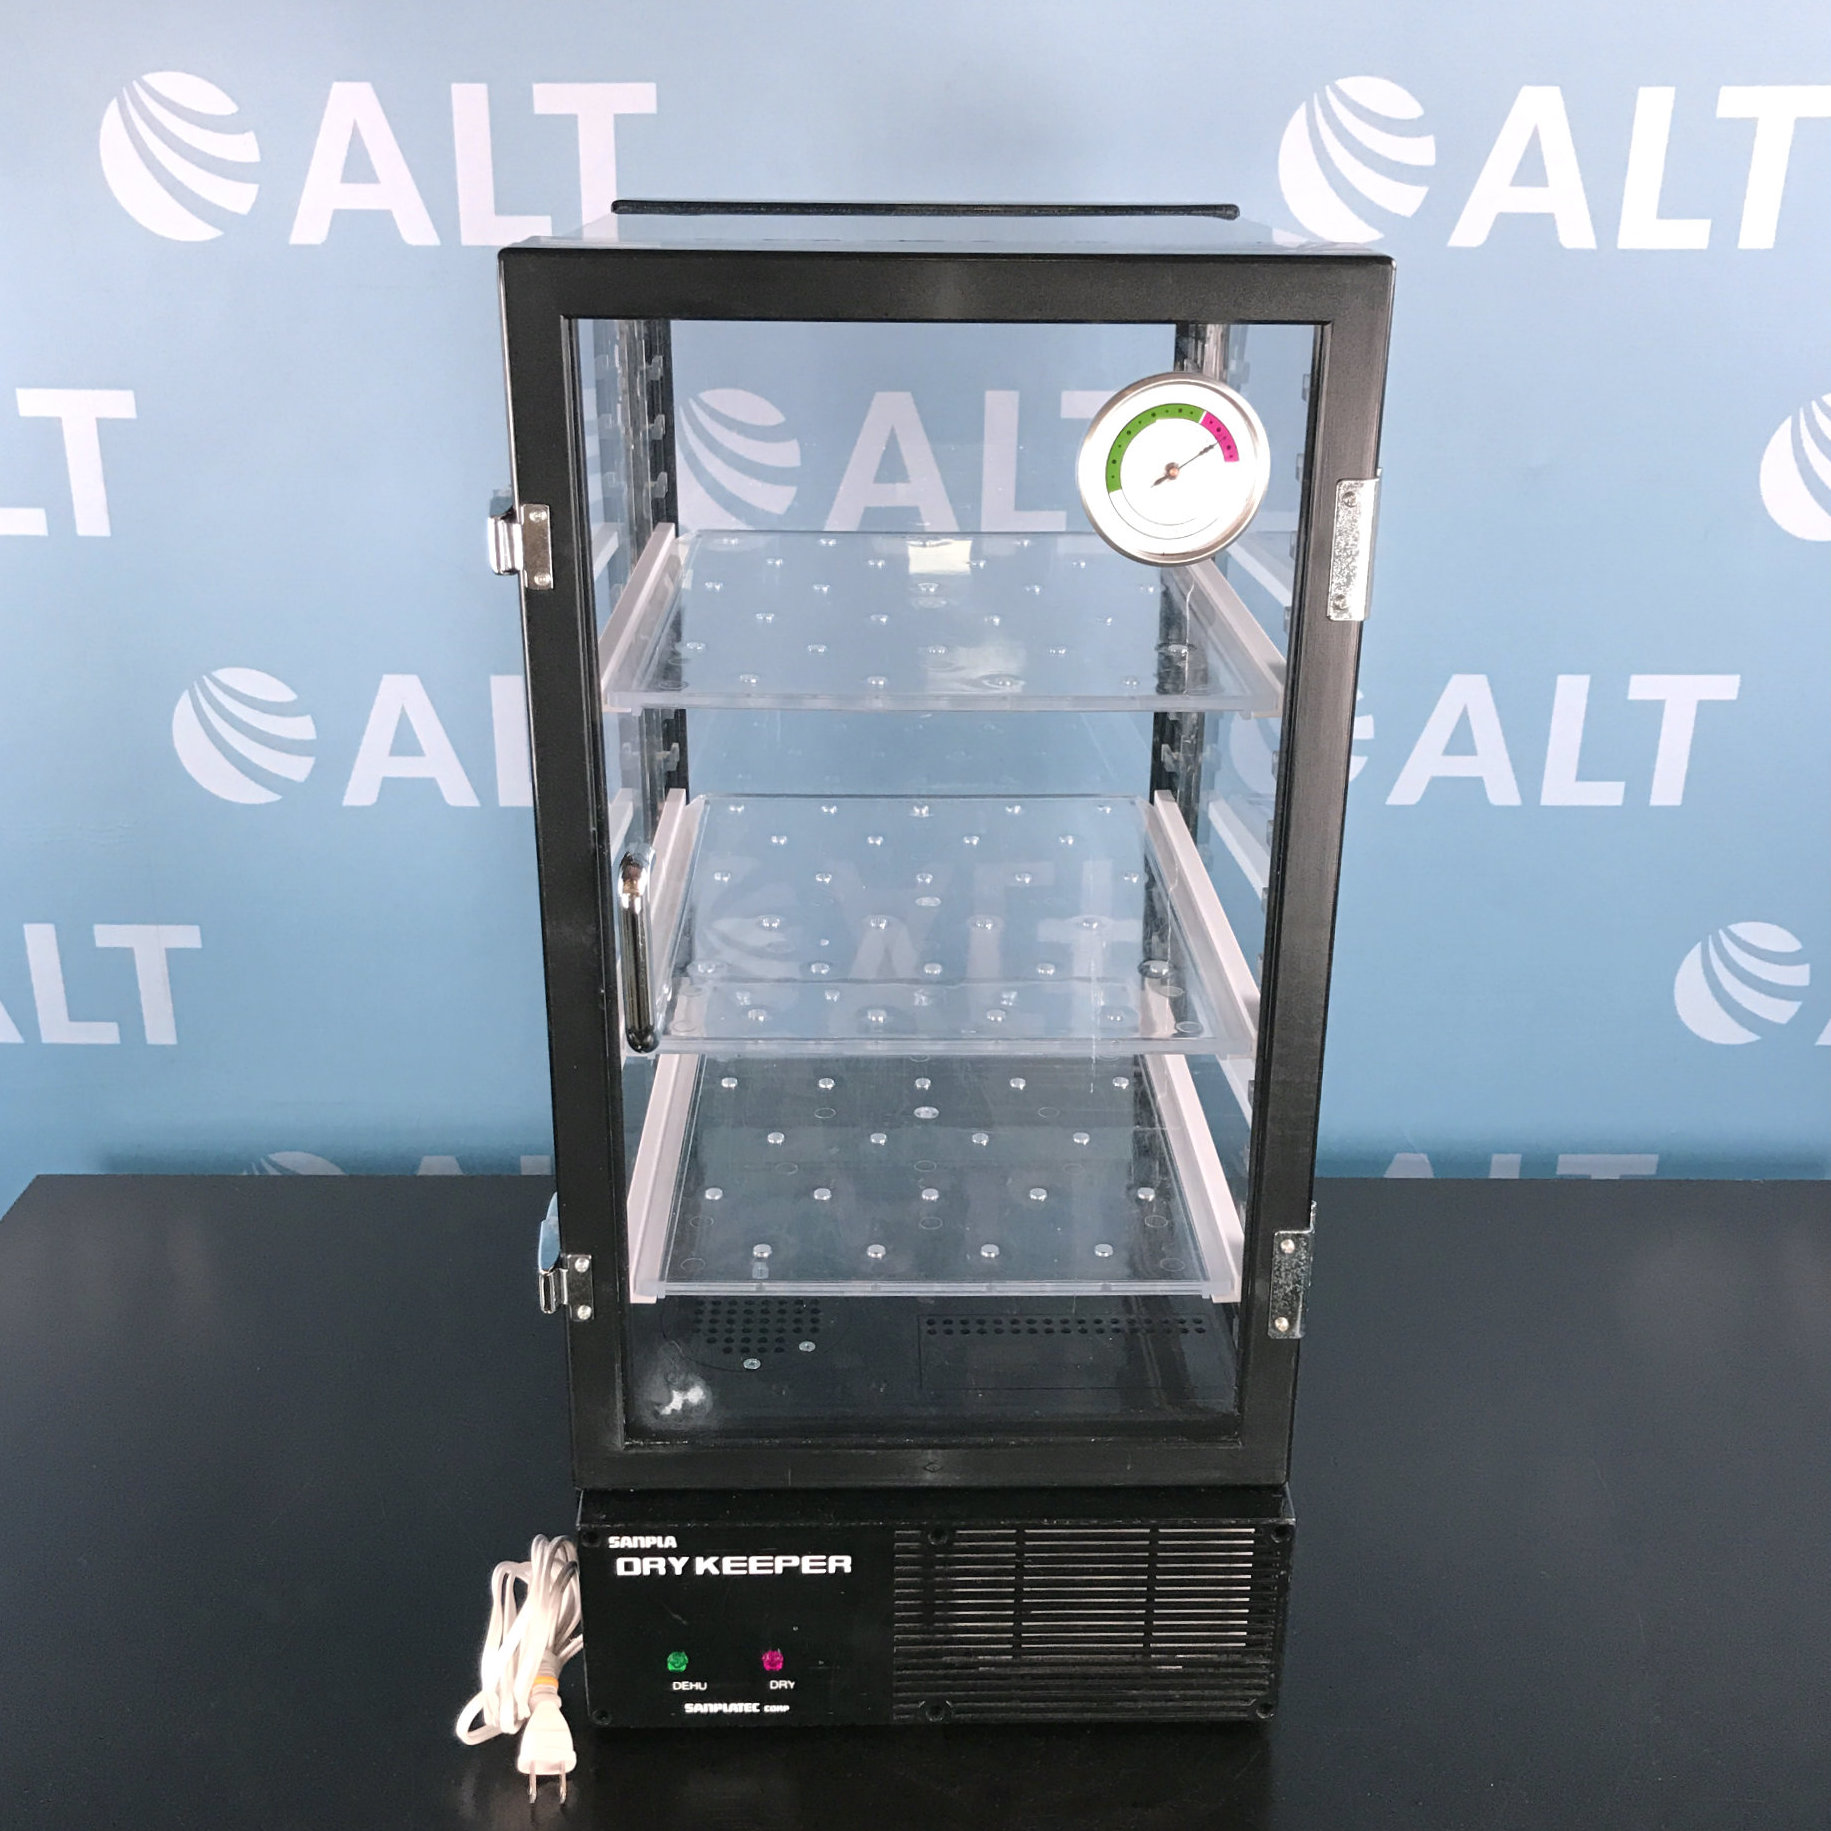 Sanplatec Corp Dry Keeper Vertical Auto-Desiccator Cabinet Image